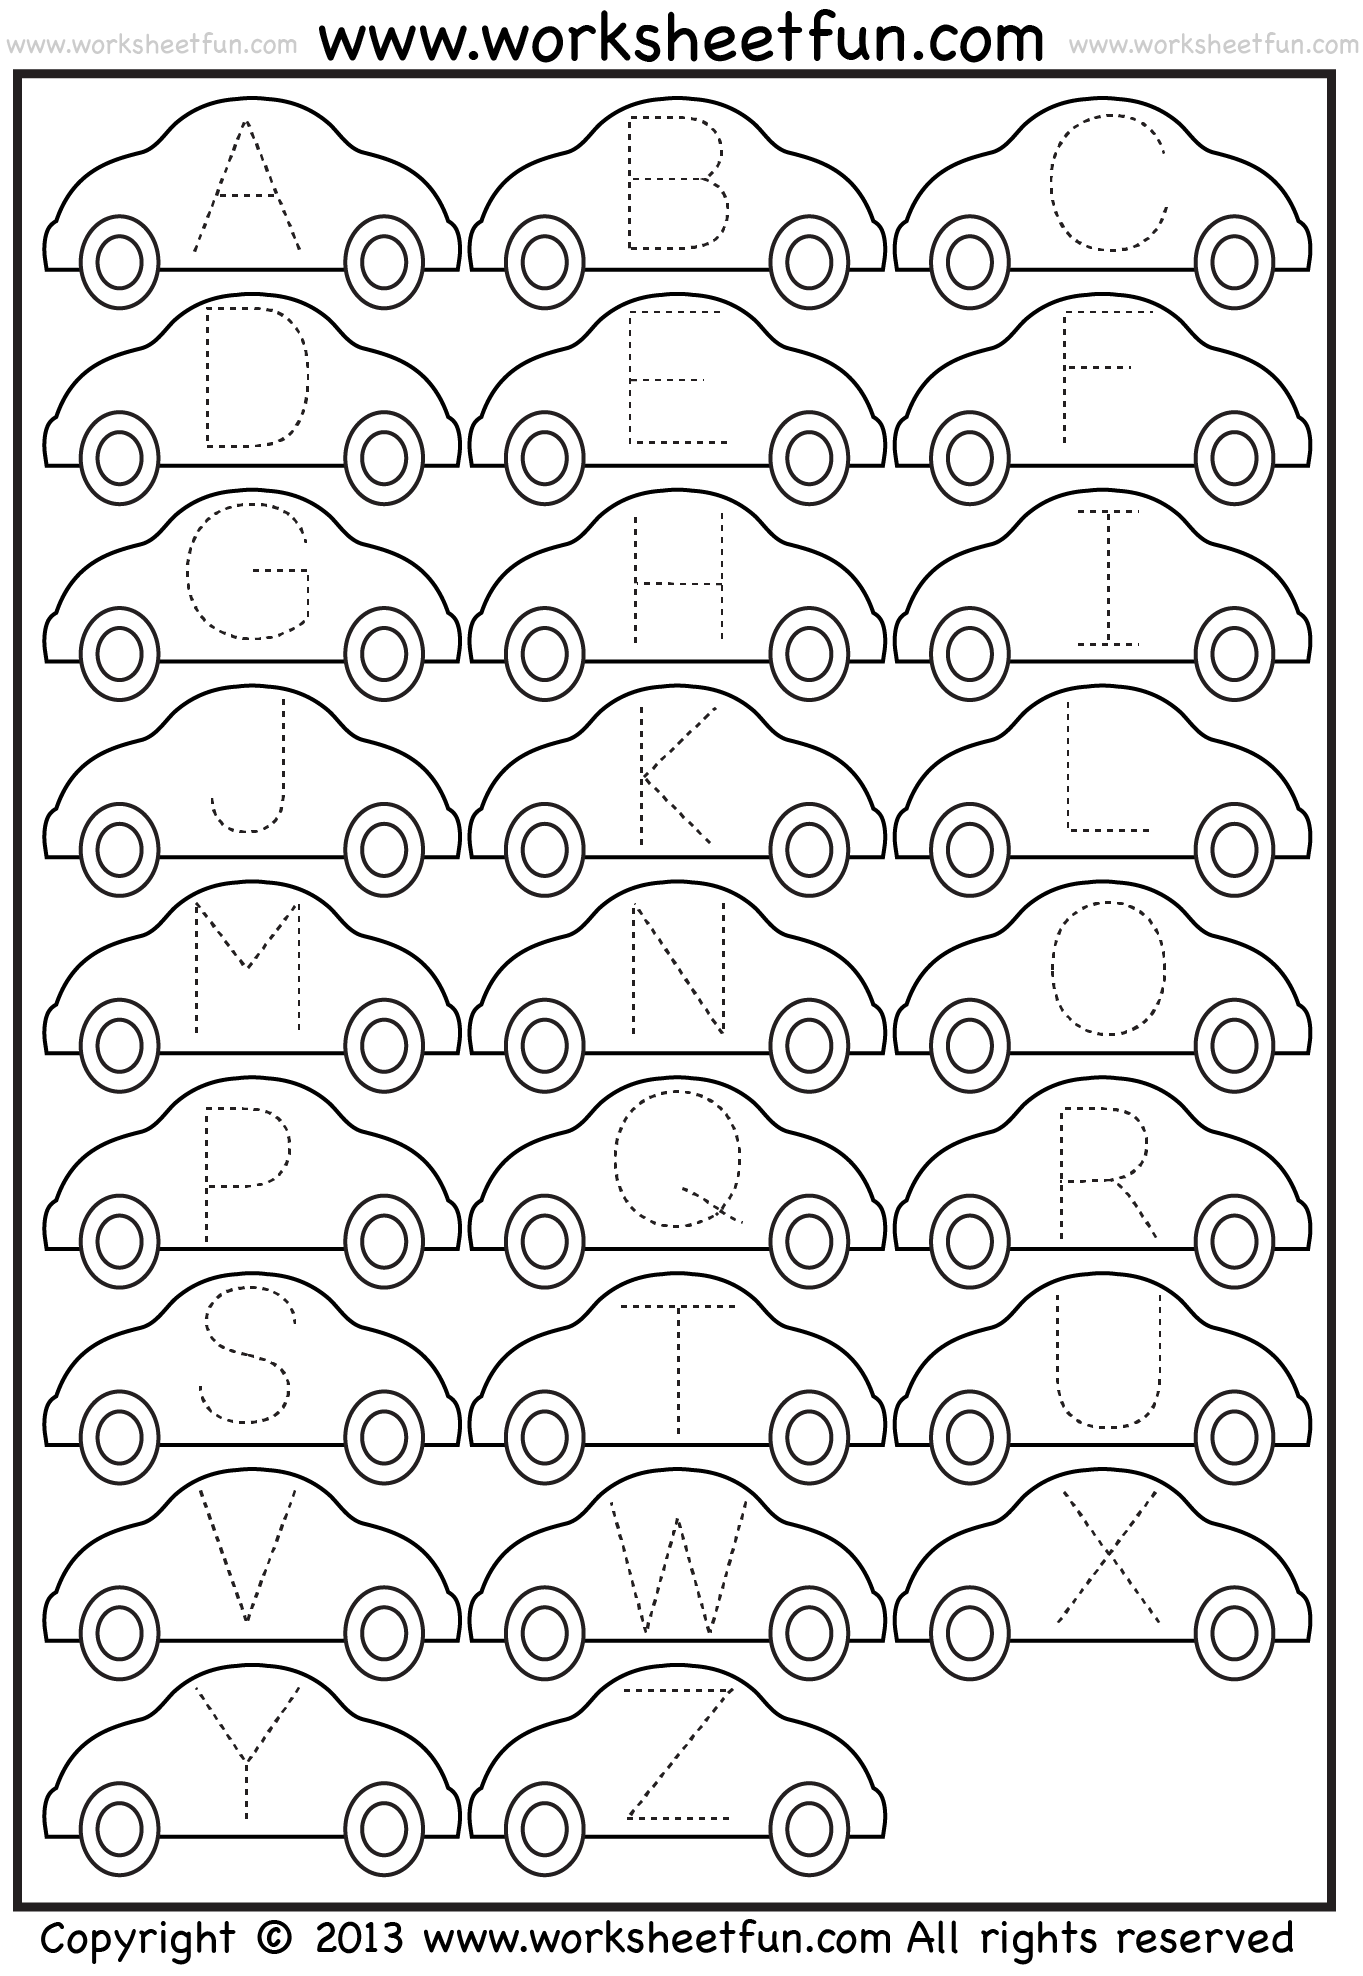 Worksheet Tracing Alphabet tracing letter free printable worksheets worksheetfun worksheet car